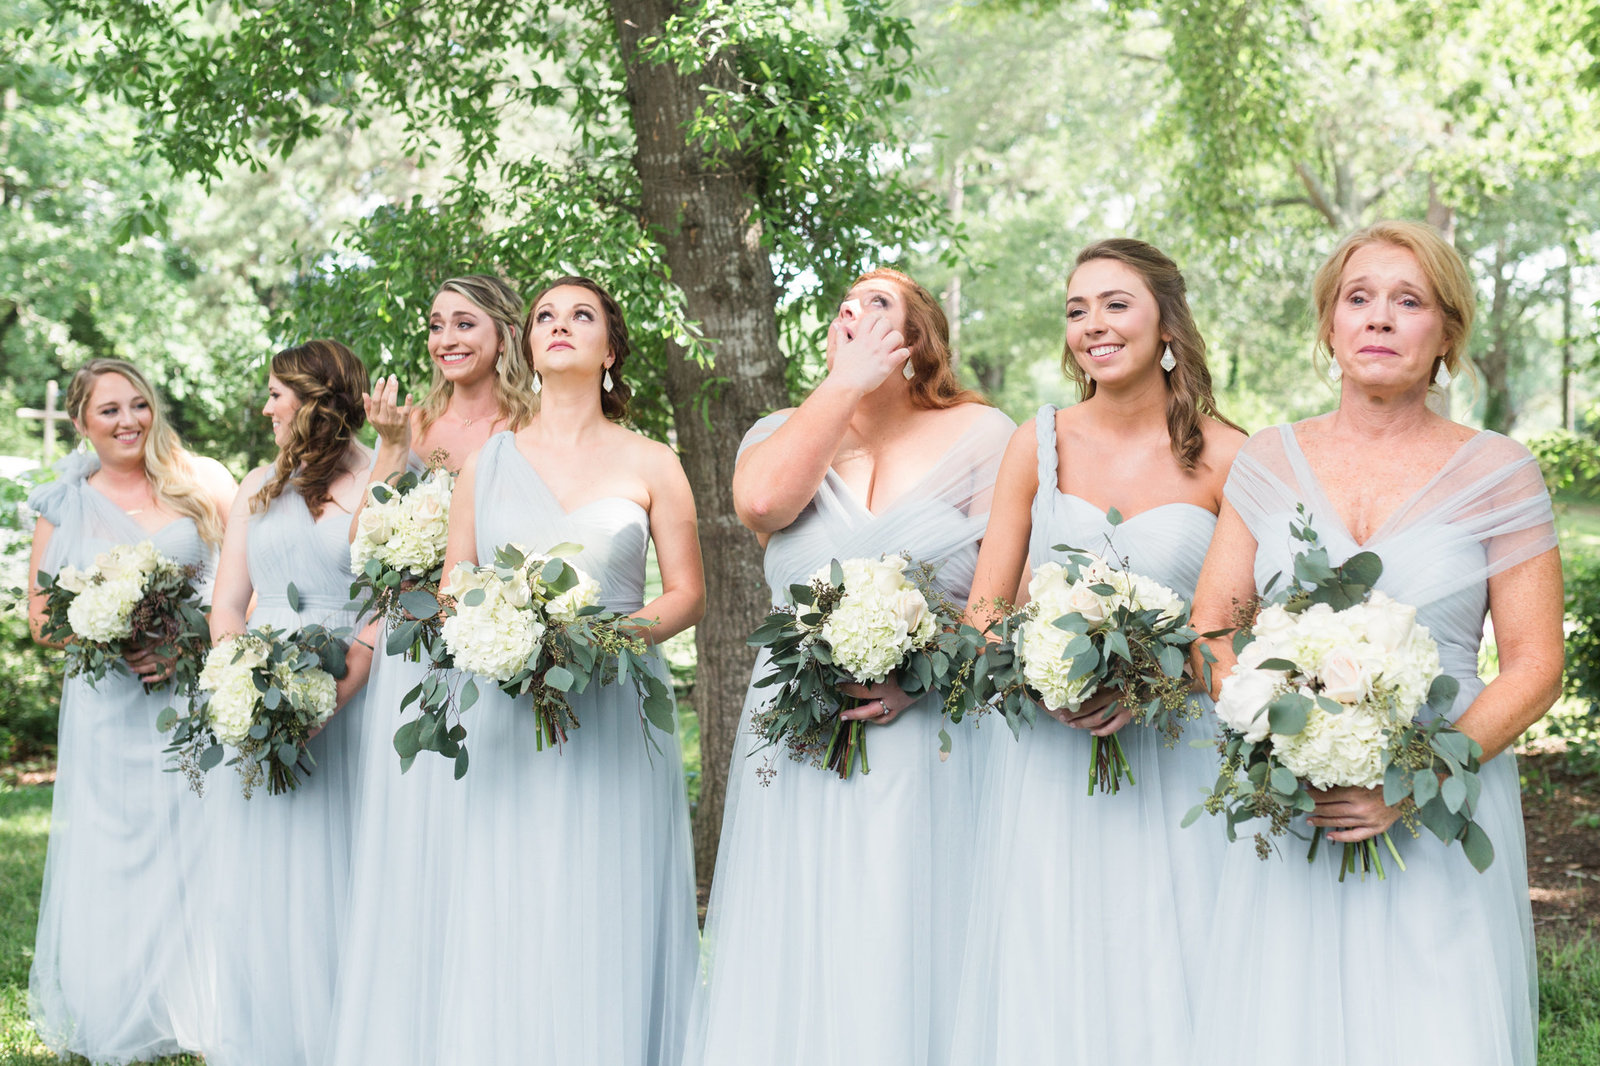 Marty and Kathryn Wedding-Ceremony-Samantha Laffoon Photography-63-1